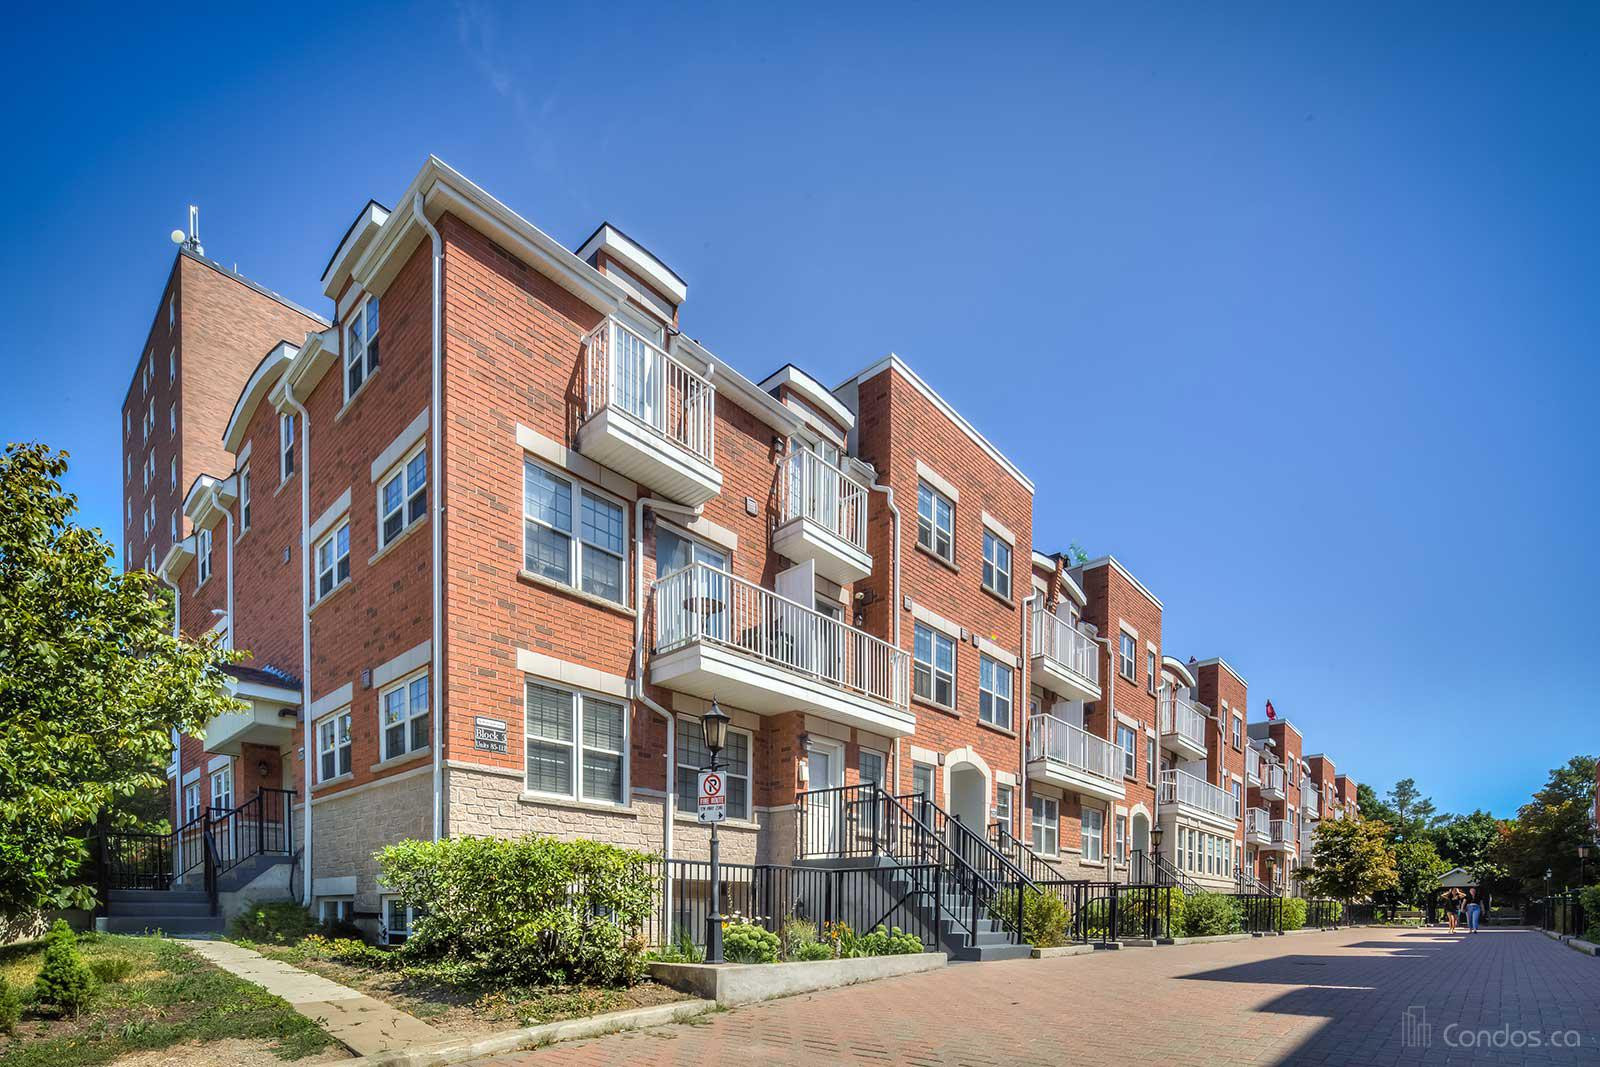 Four Winds Condos at 37 Four Winds Dr, Toronto 1